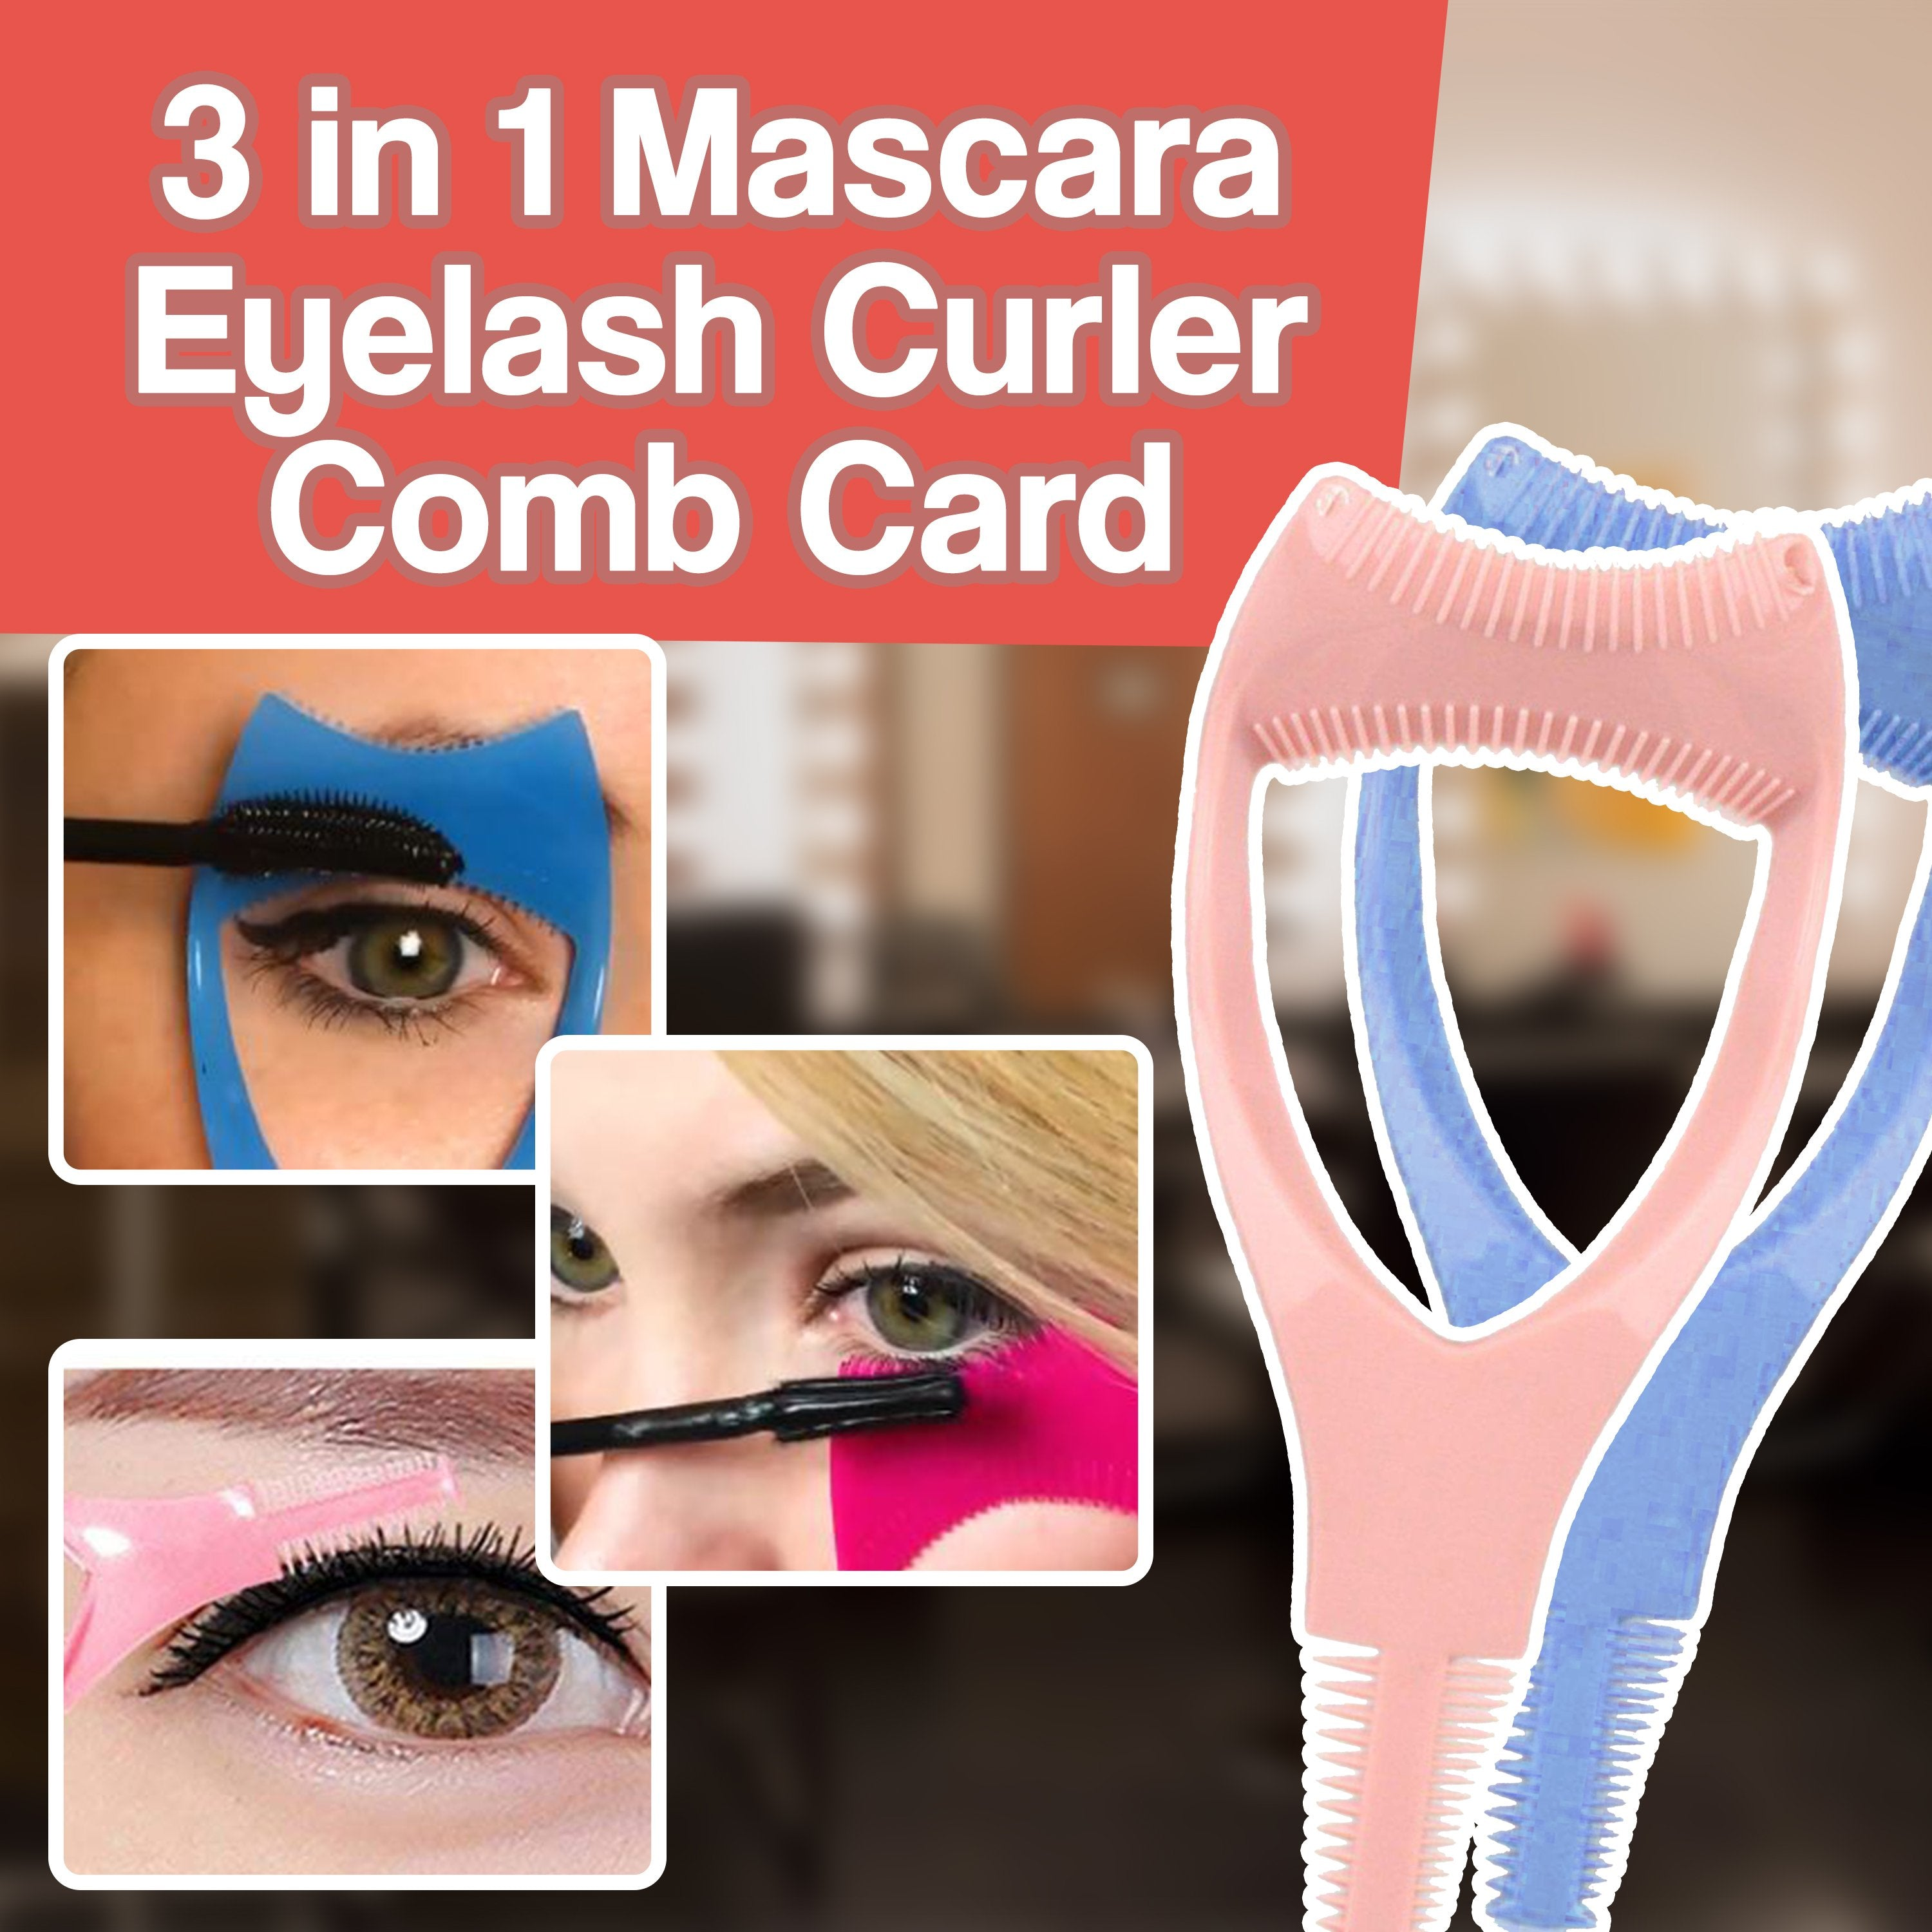 3 in 1 Mascara Eyelash Curler Comb Card